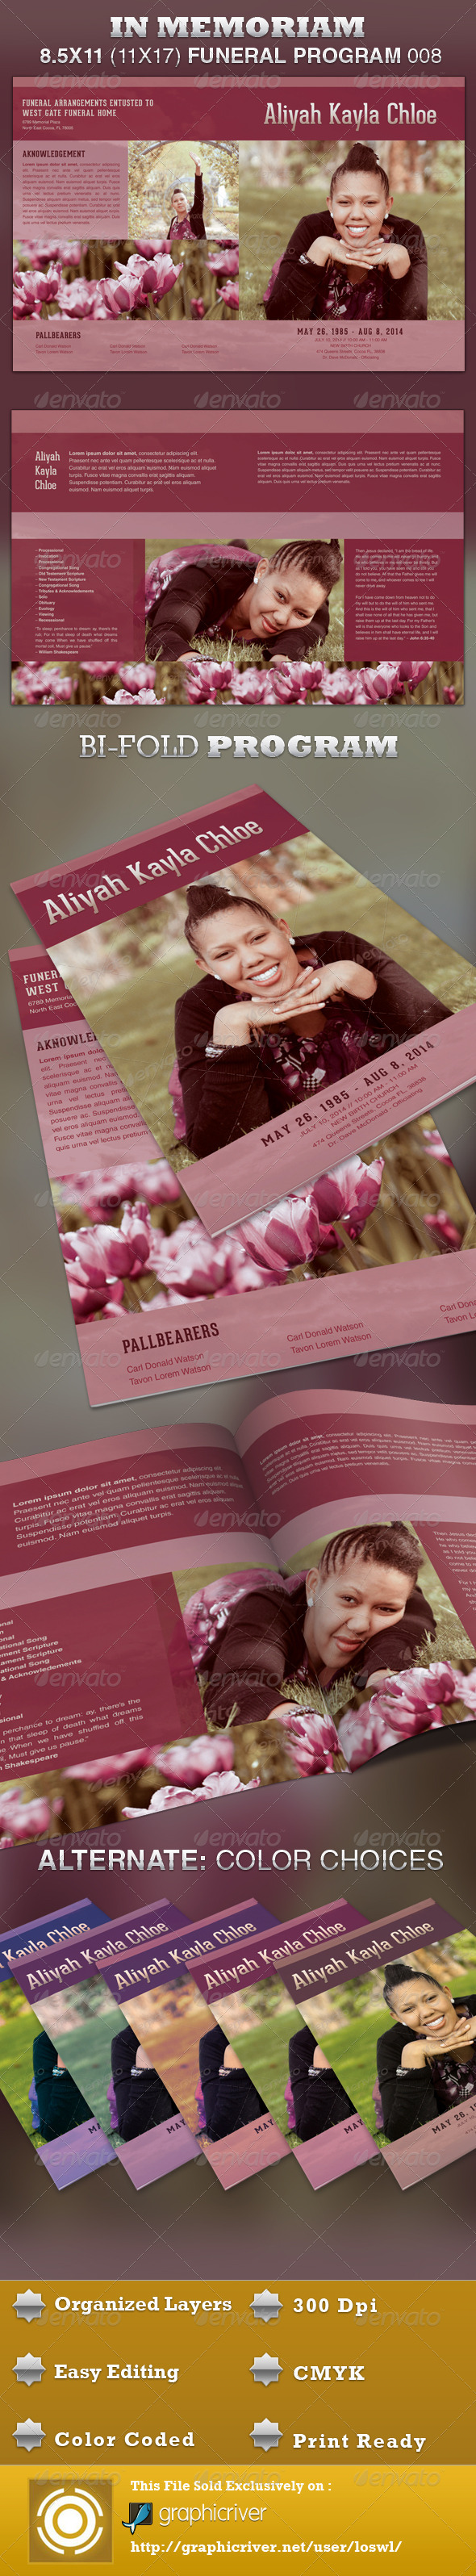 GraphicRiver In Memoriam Funeral Program Template 008 3862025